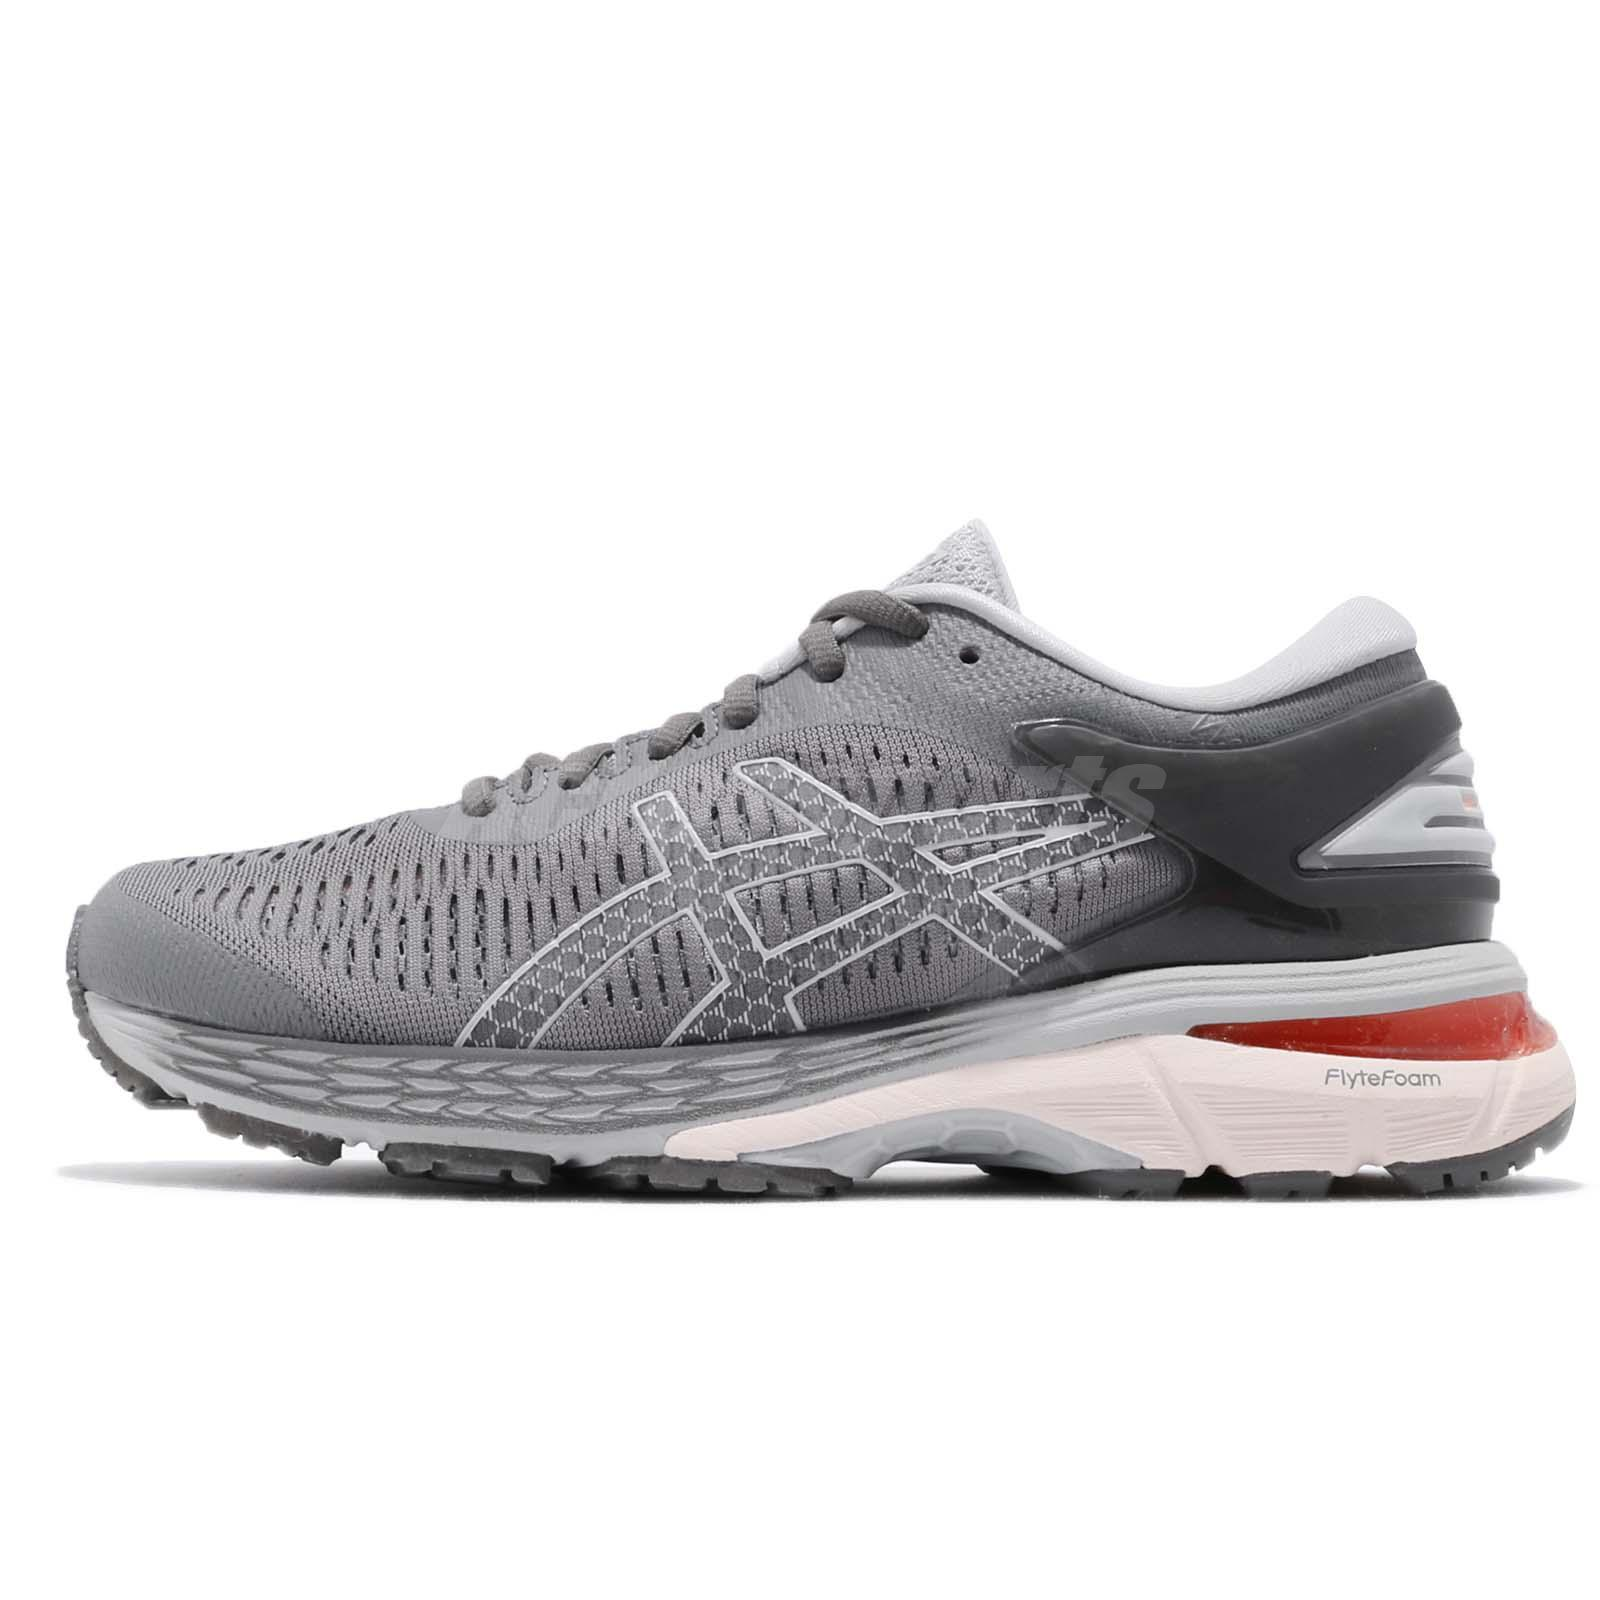 c05da24030d4 Details about Asics Gel-Kayano 25 D Wide Carbon Grey Women Running Shoes  Sneakers 1012A032-020